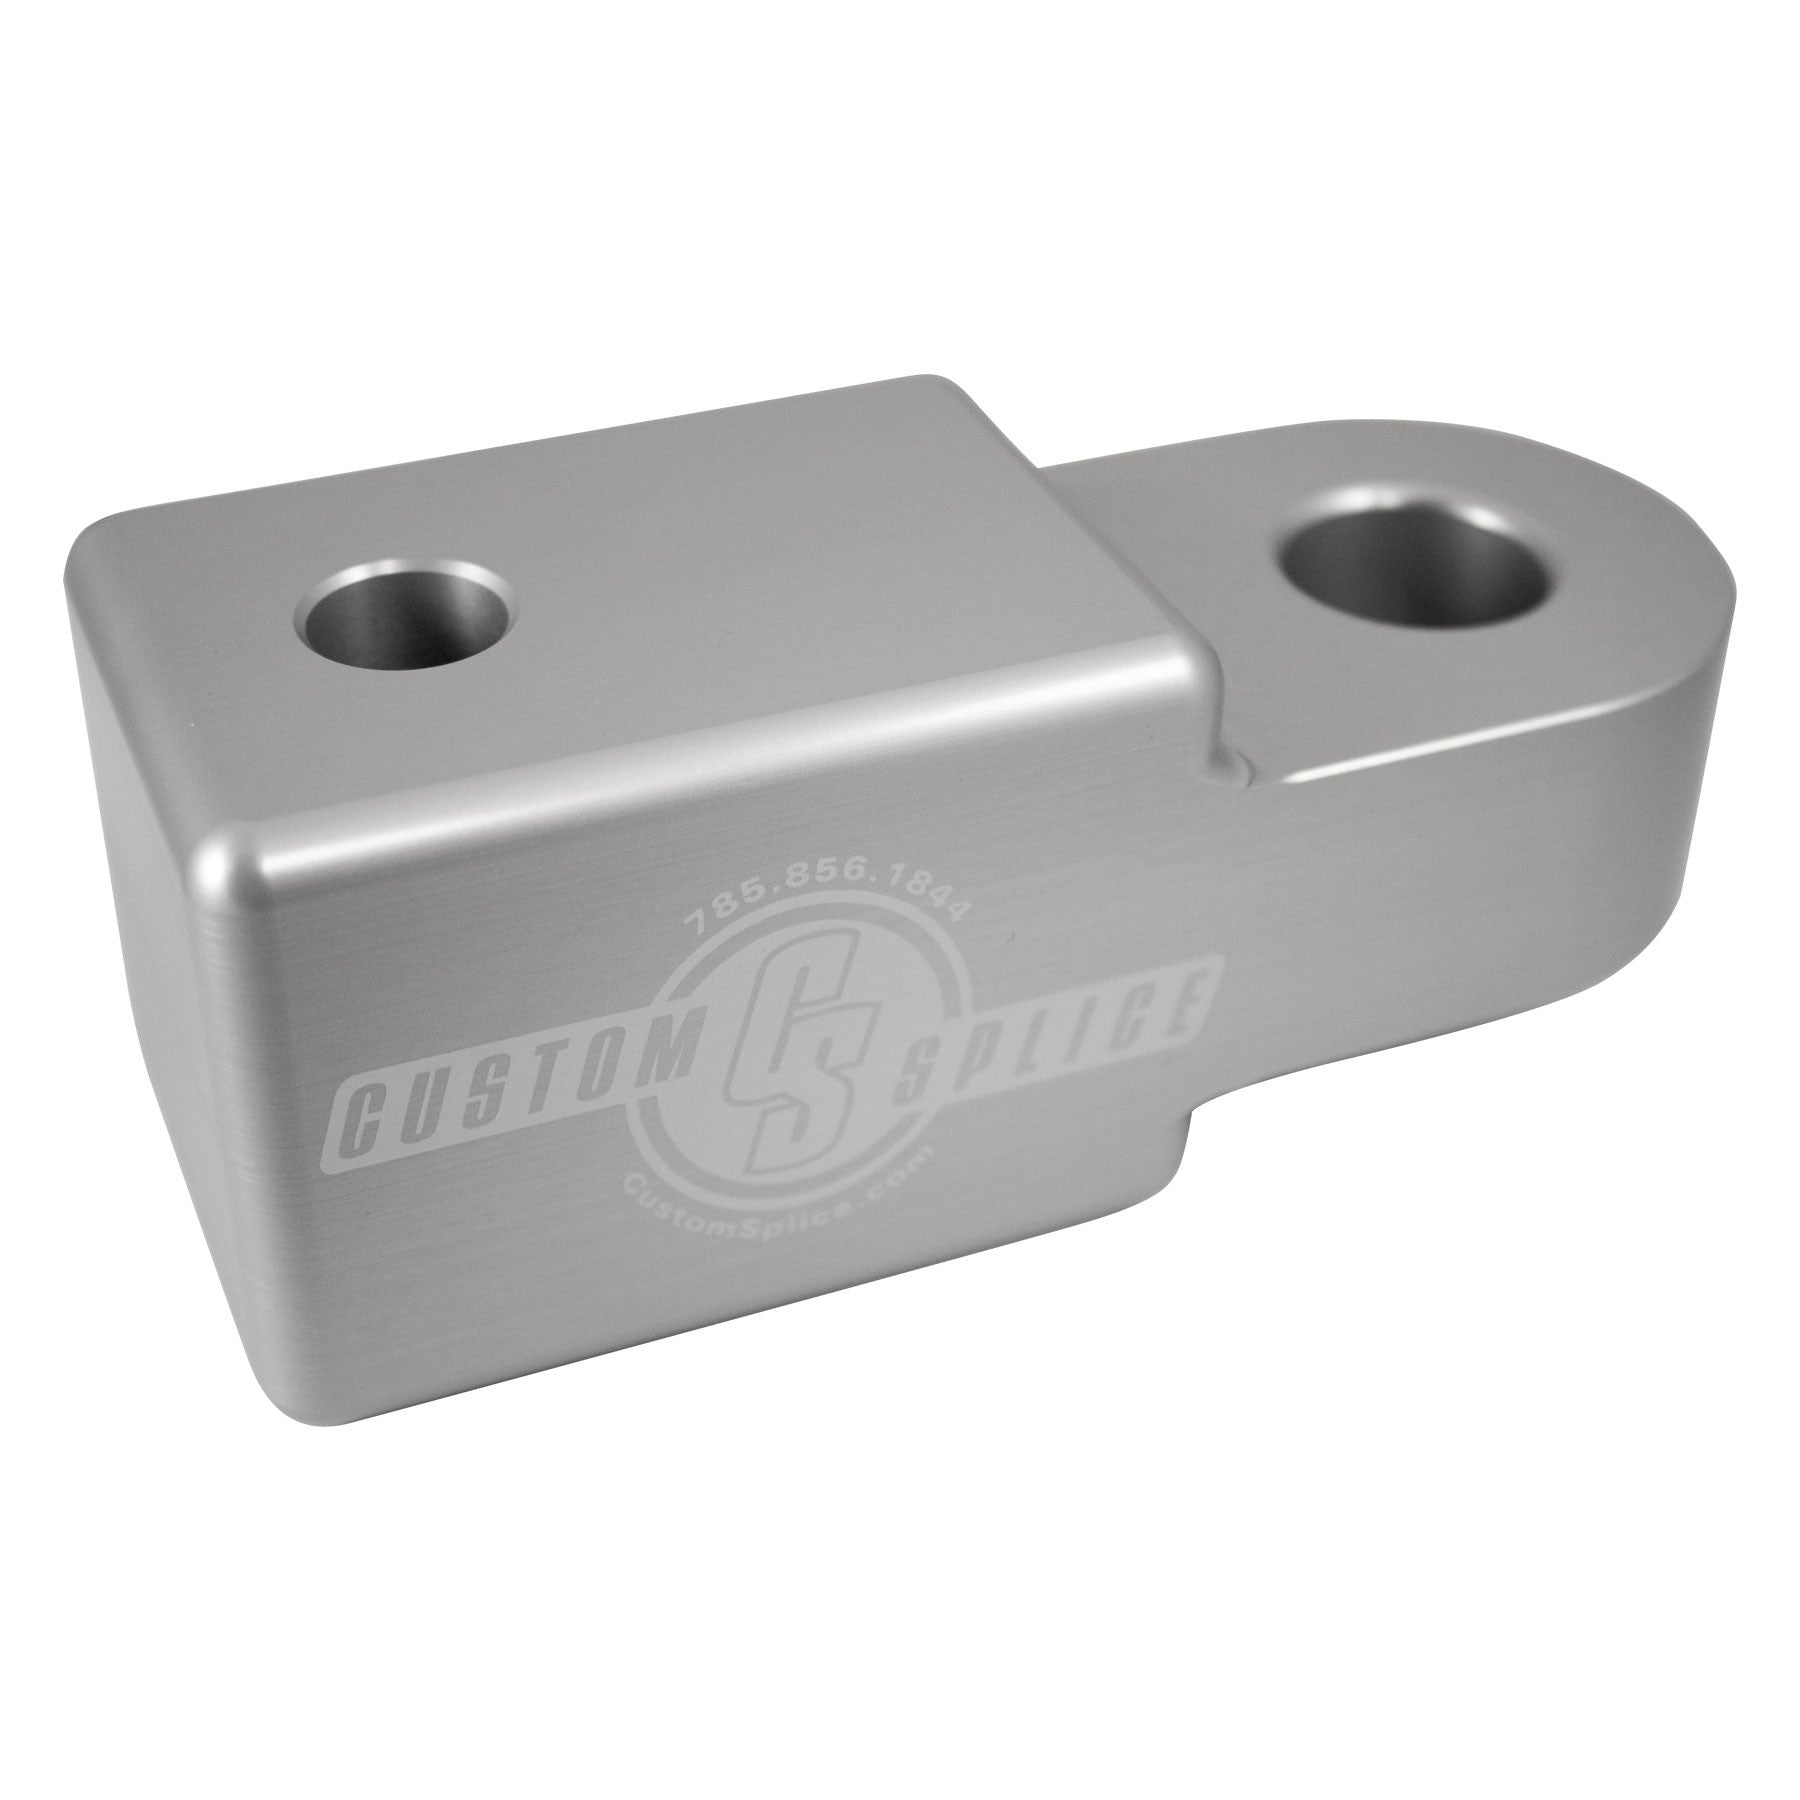 "Silver 2 1/2"" Hitch Receiver Shackle Adapter - Angled view for profile and scale."